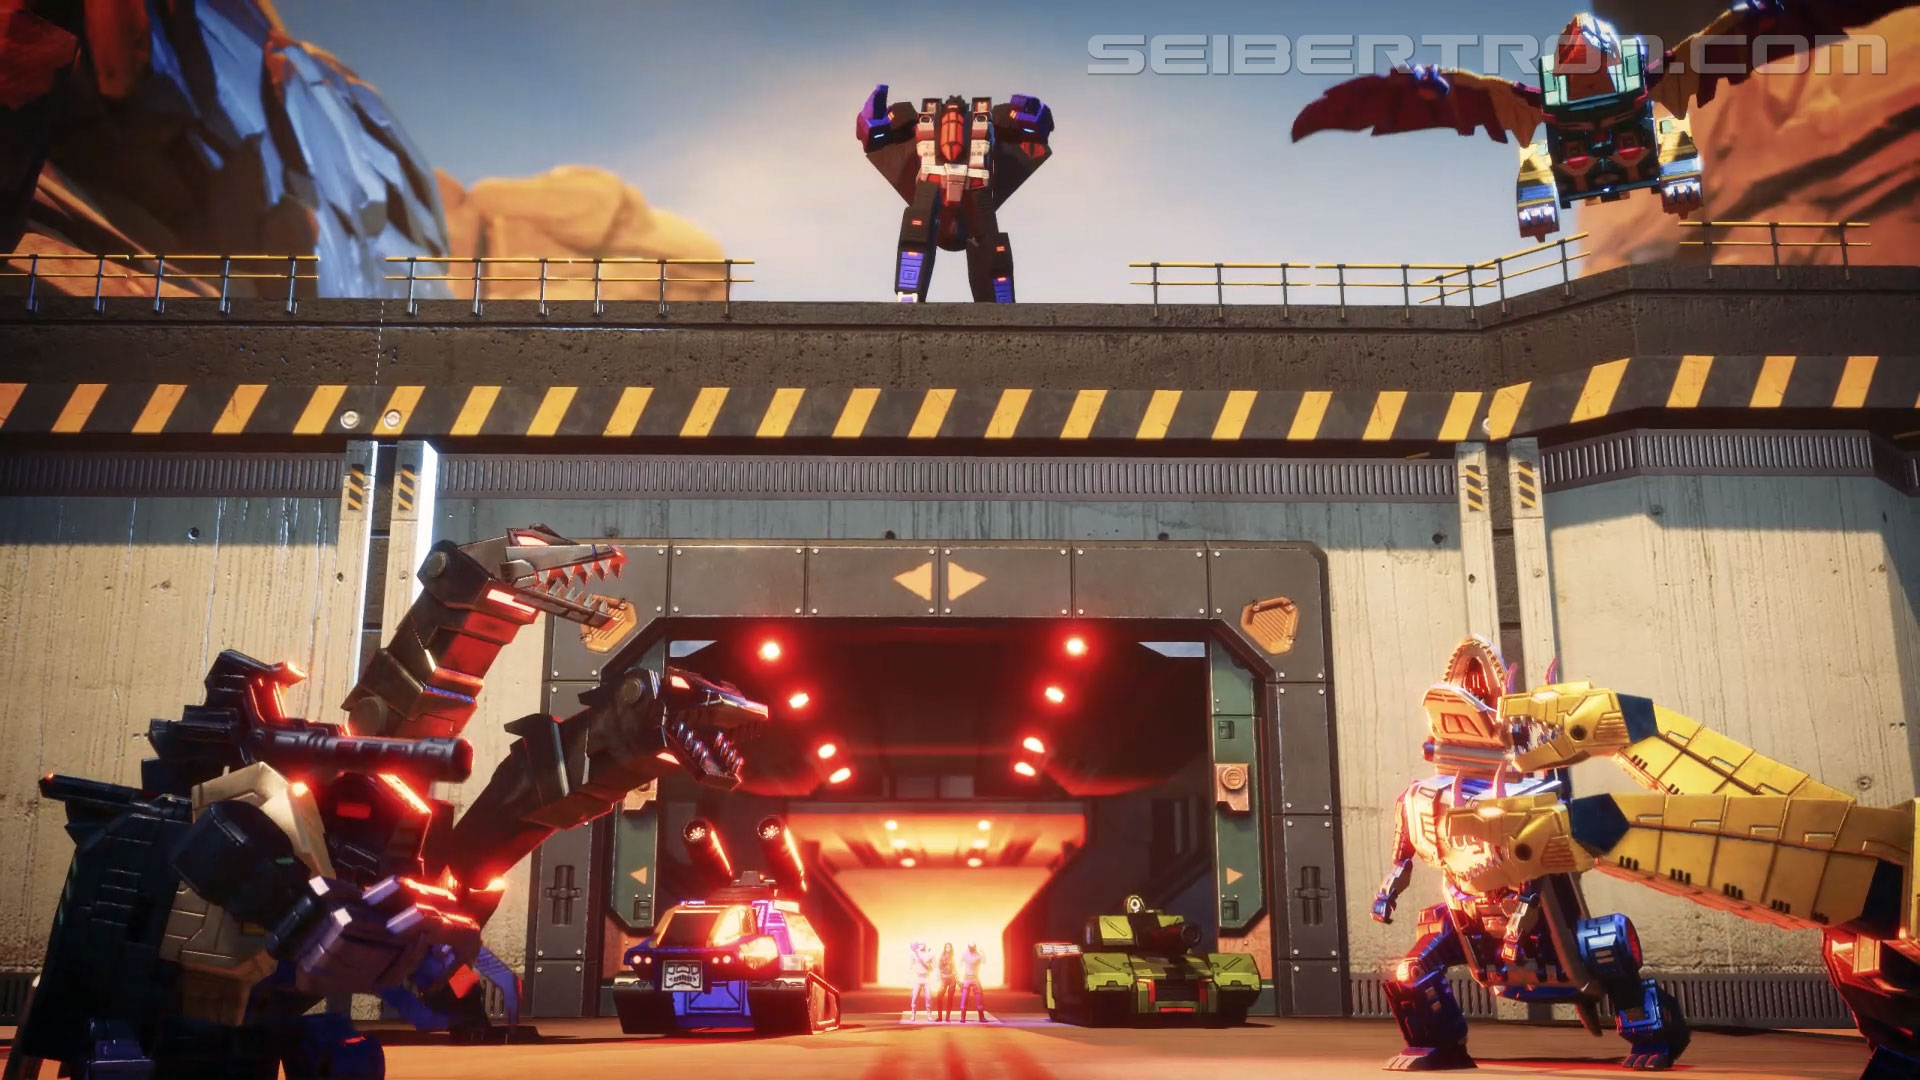 Transformers News: GI Joe and the Autobots battle Cobra and the Decepticons in Transformers Earth Wars game